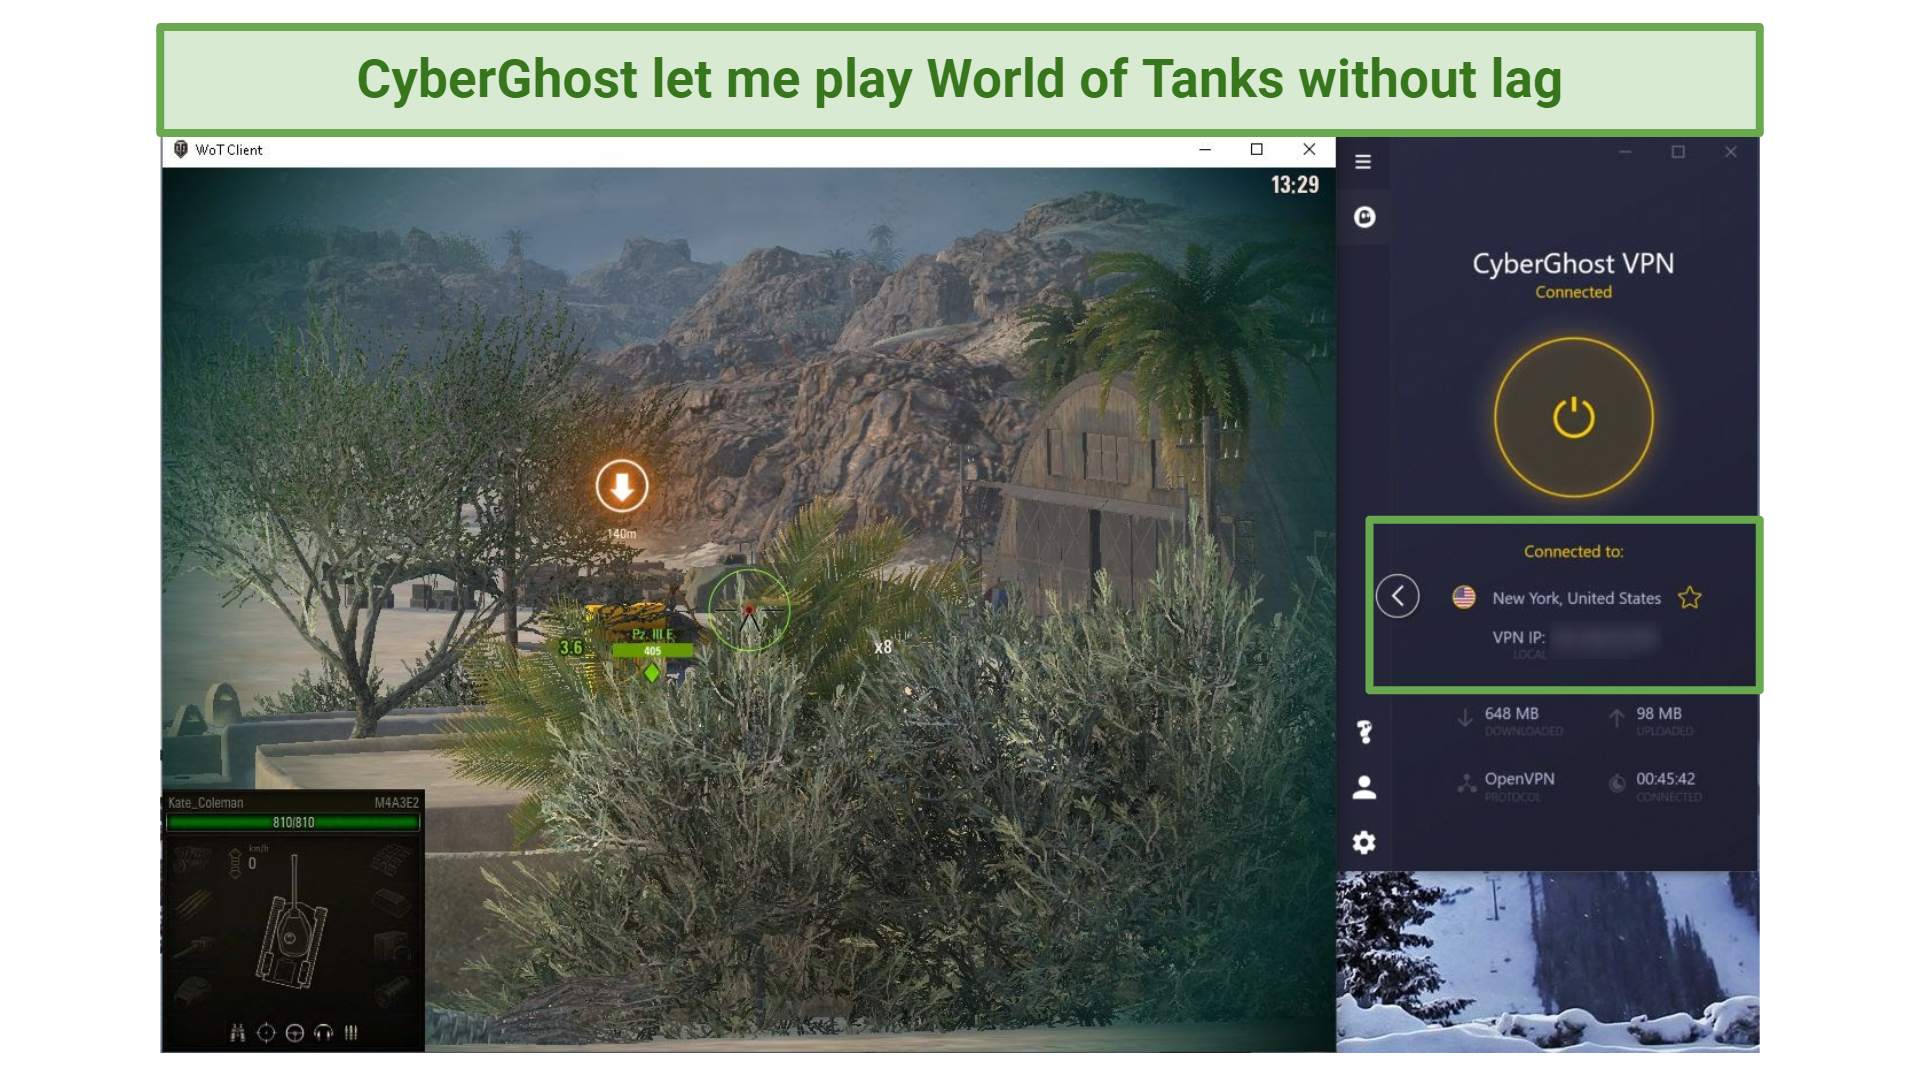 A screenshot of playing World of Tanks while connected to CyberGhost.